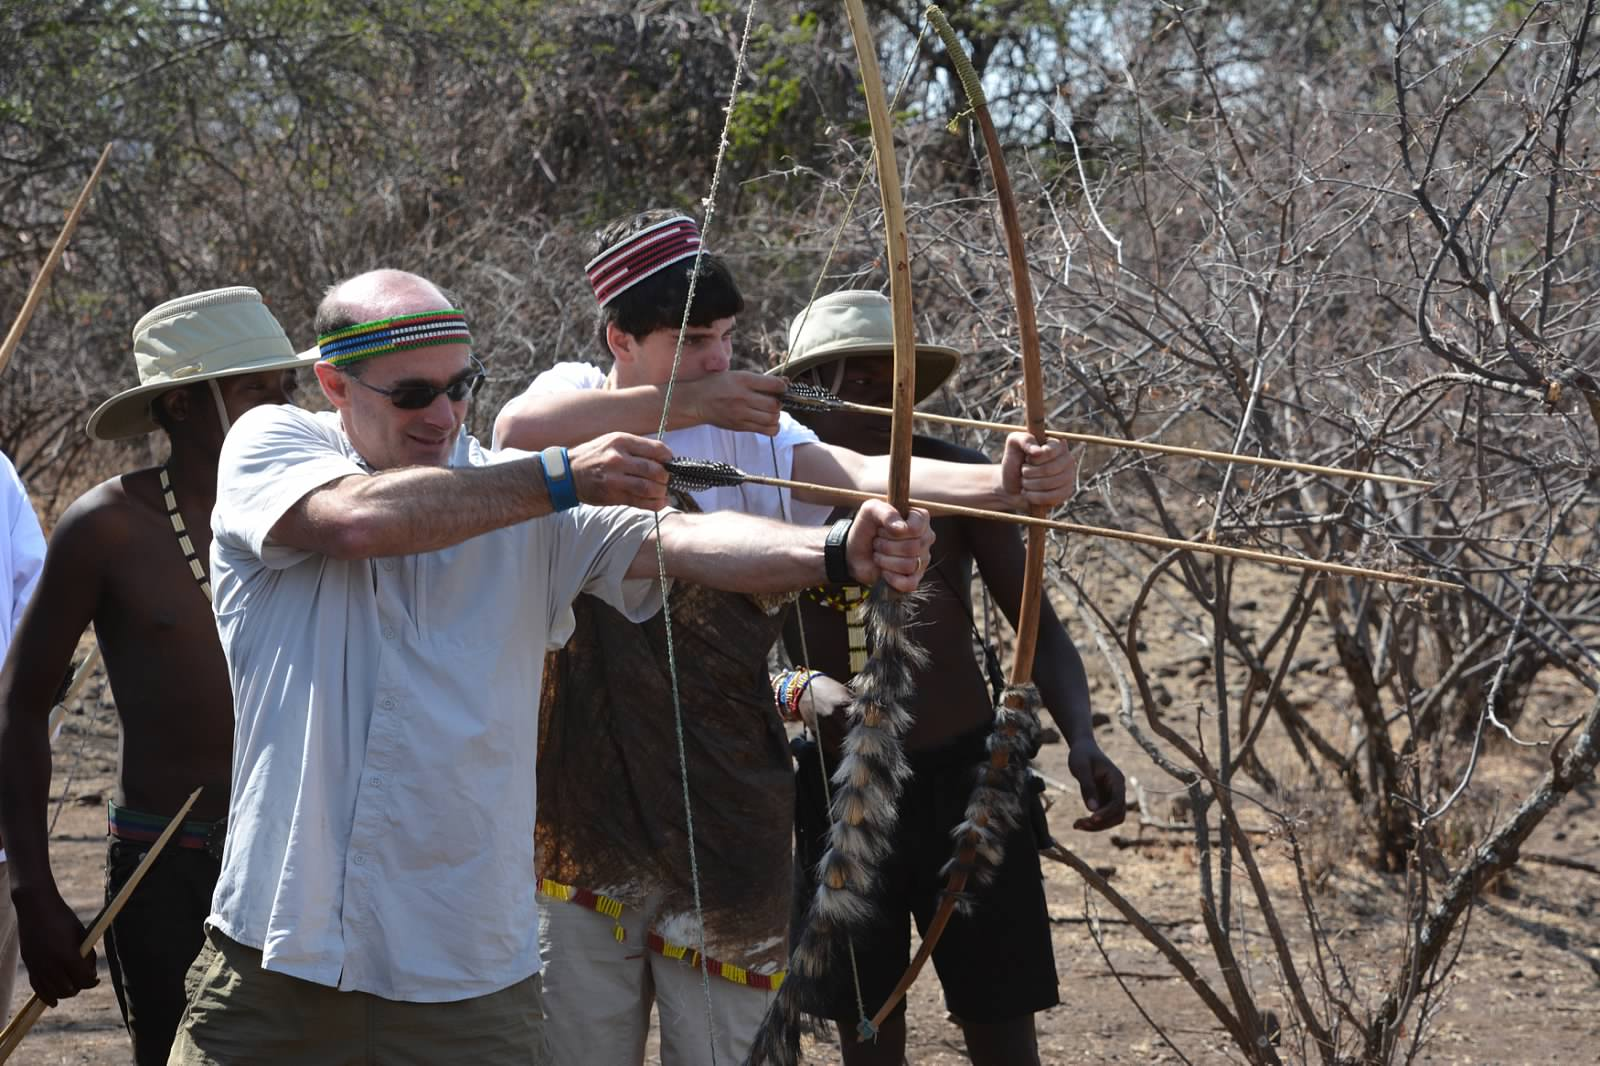 Archery competition with the Hadza